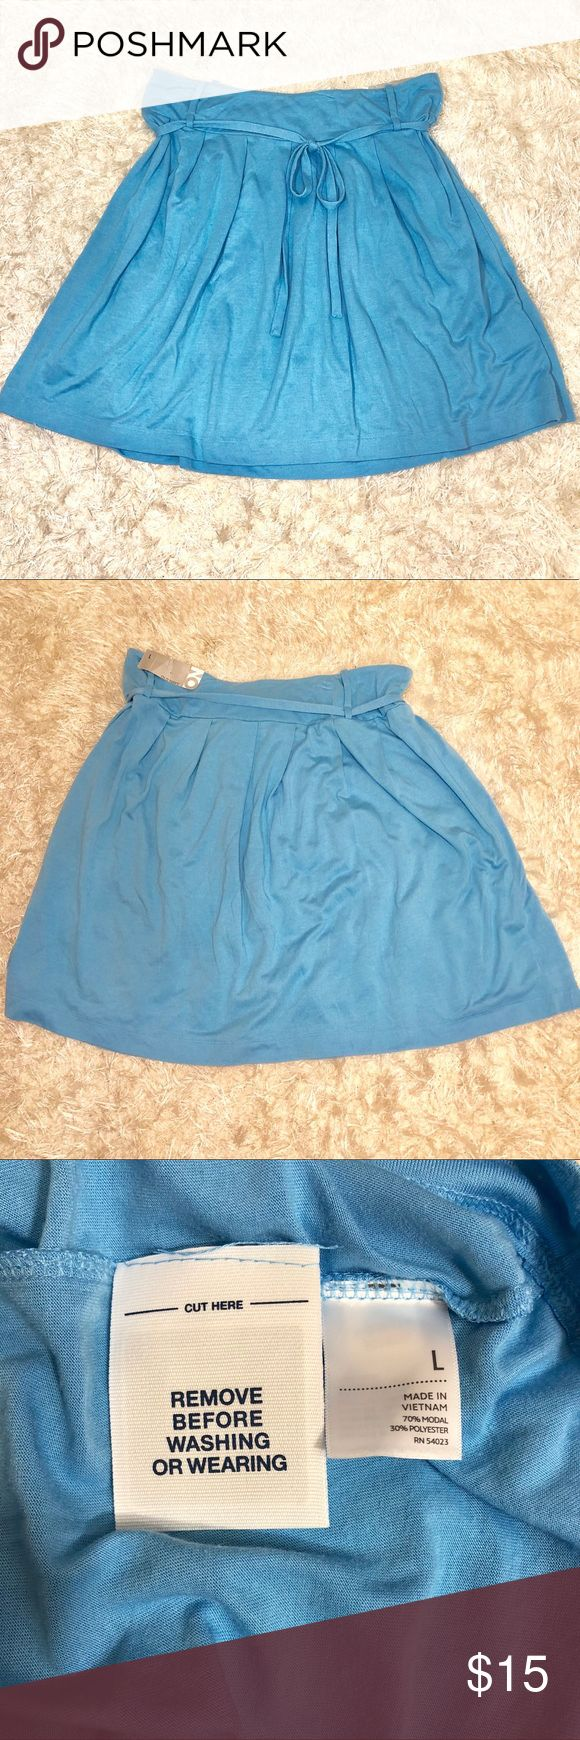 """Blue Jersey Mini Skirt Old Navy Size Large Light Blue Jersey mini skirt Old Navy size large New with tags Pleated and tie belt  Waist stretches from 16"""" across lying flat to 21"""" length 21 inches Old Navy Skirts Mini"""